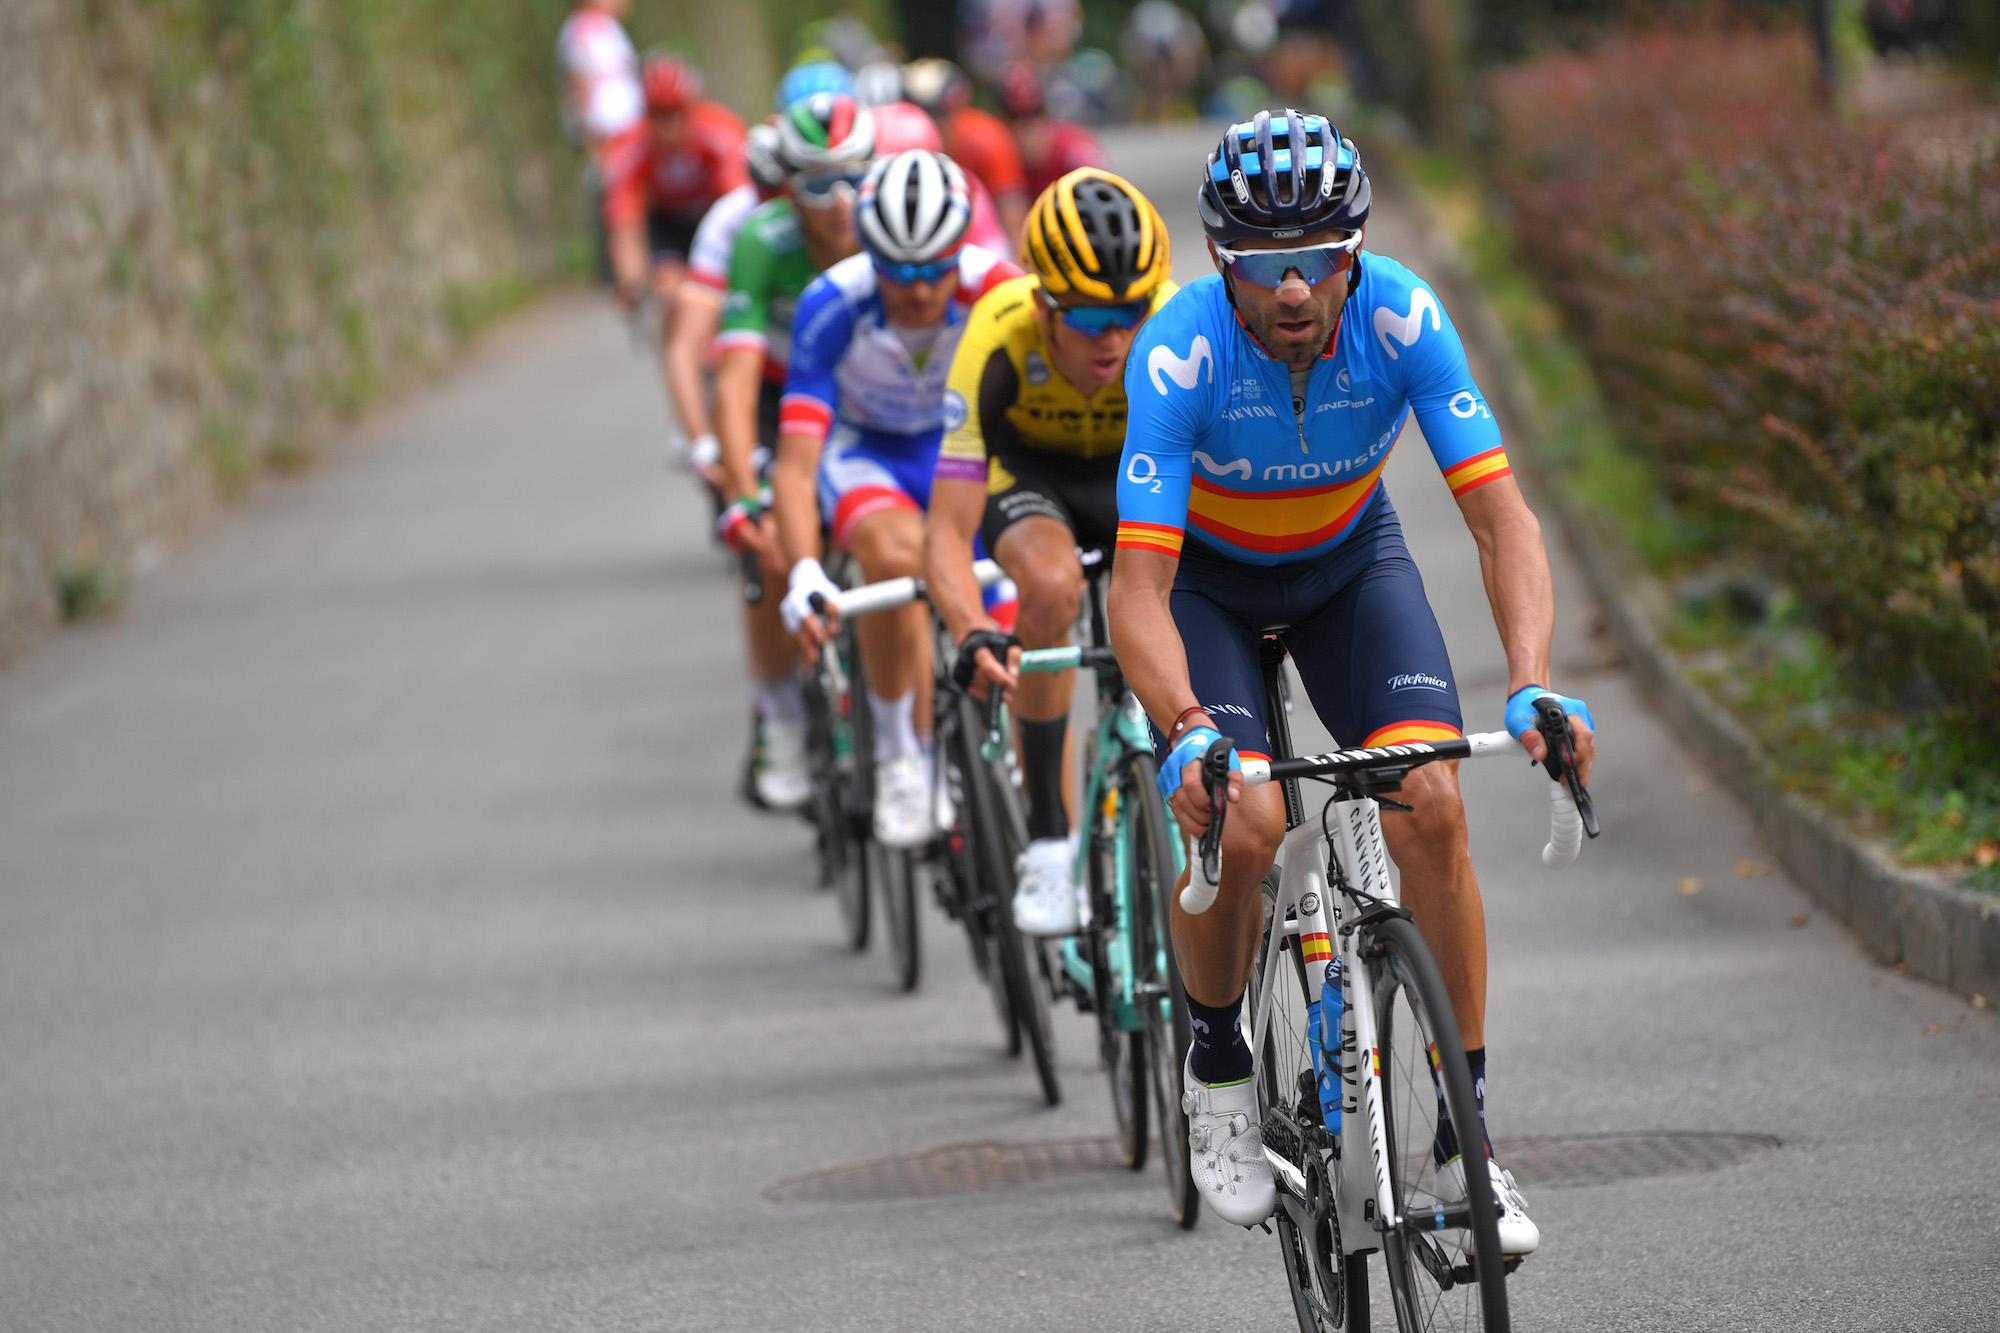 Alejandro Valverde will ride the Tour de France all the way to Paris to prepare for Tokyo 2020 - Cycling Weekly